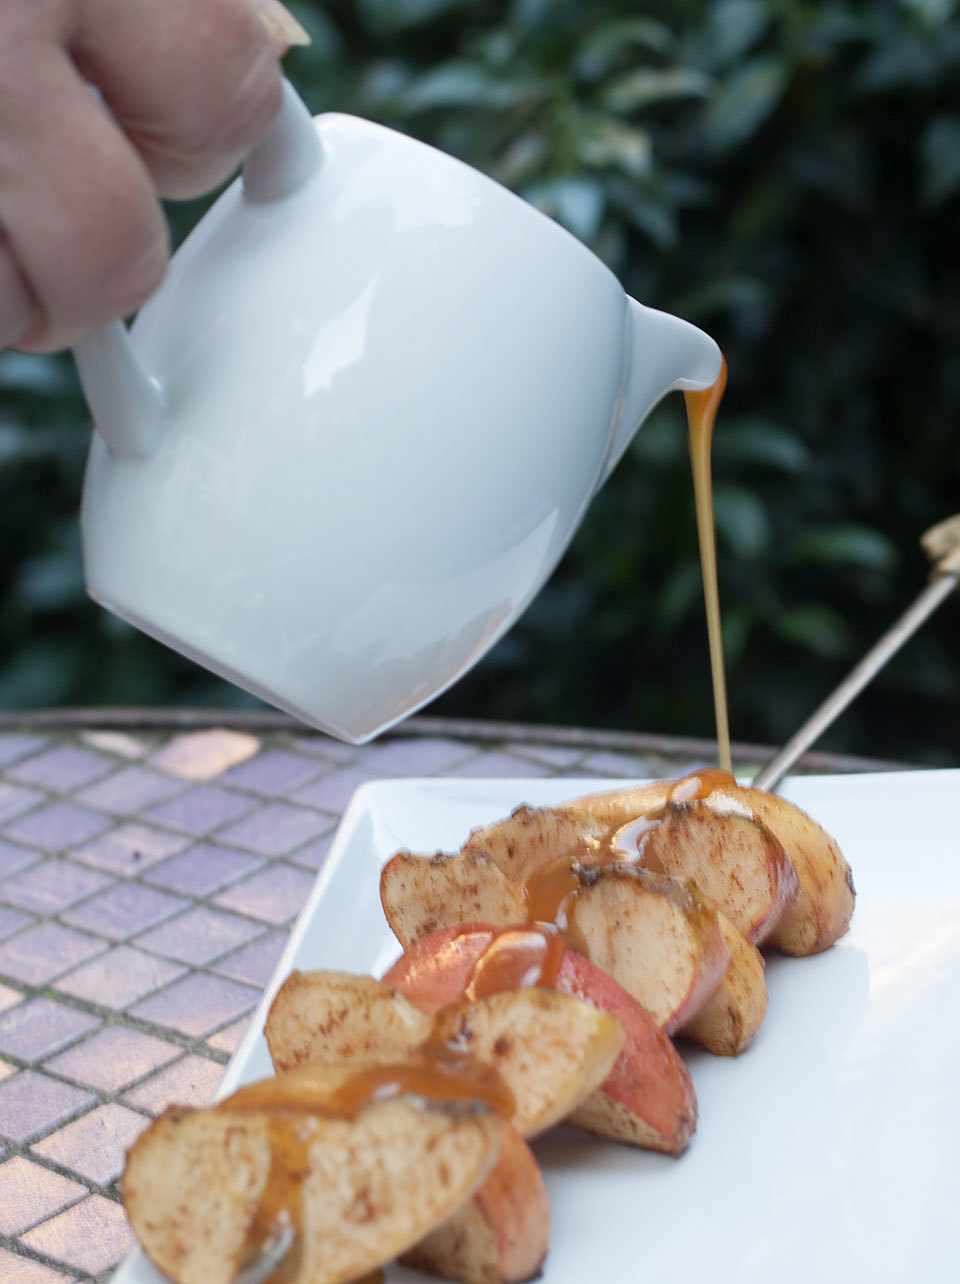 BBQ Apple Skewers with Salted Caramel Sauce